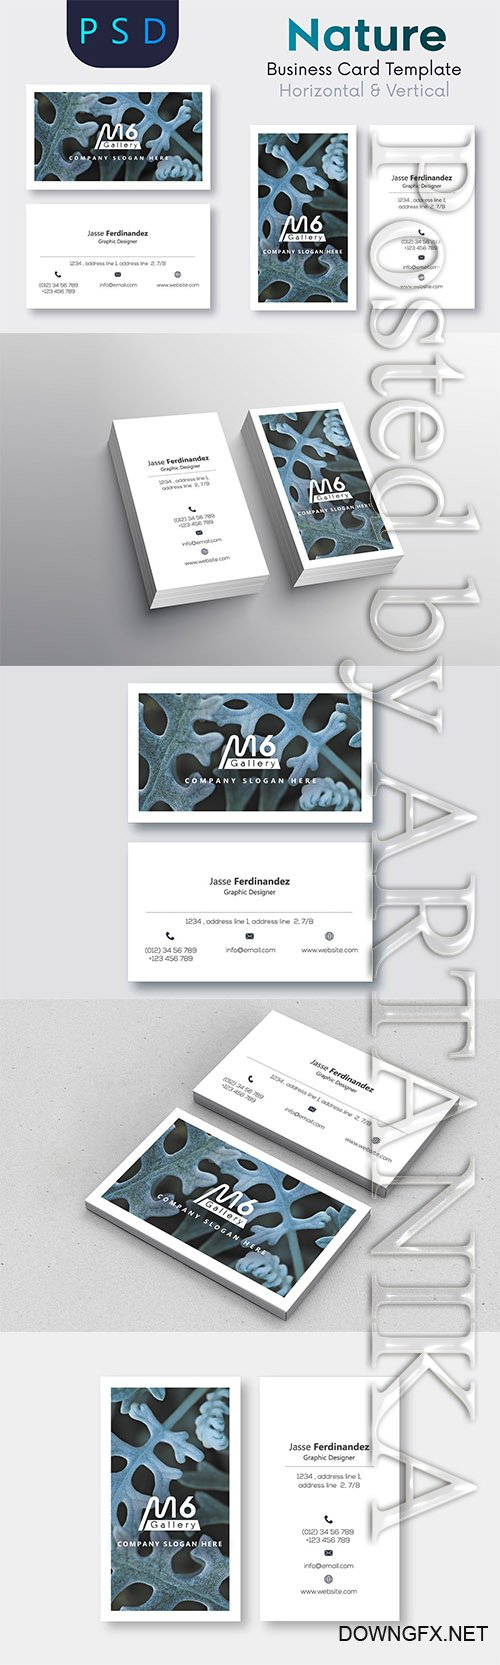 CreativeMarket - Nature Business Card Template - S50 2218864